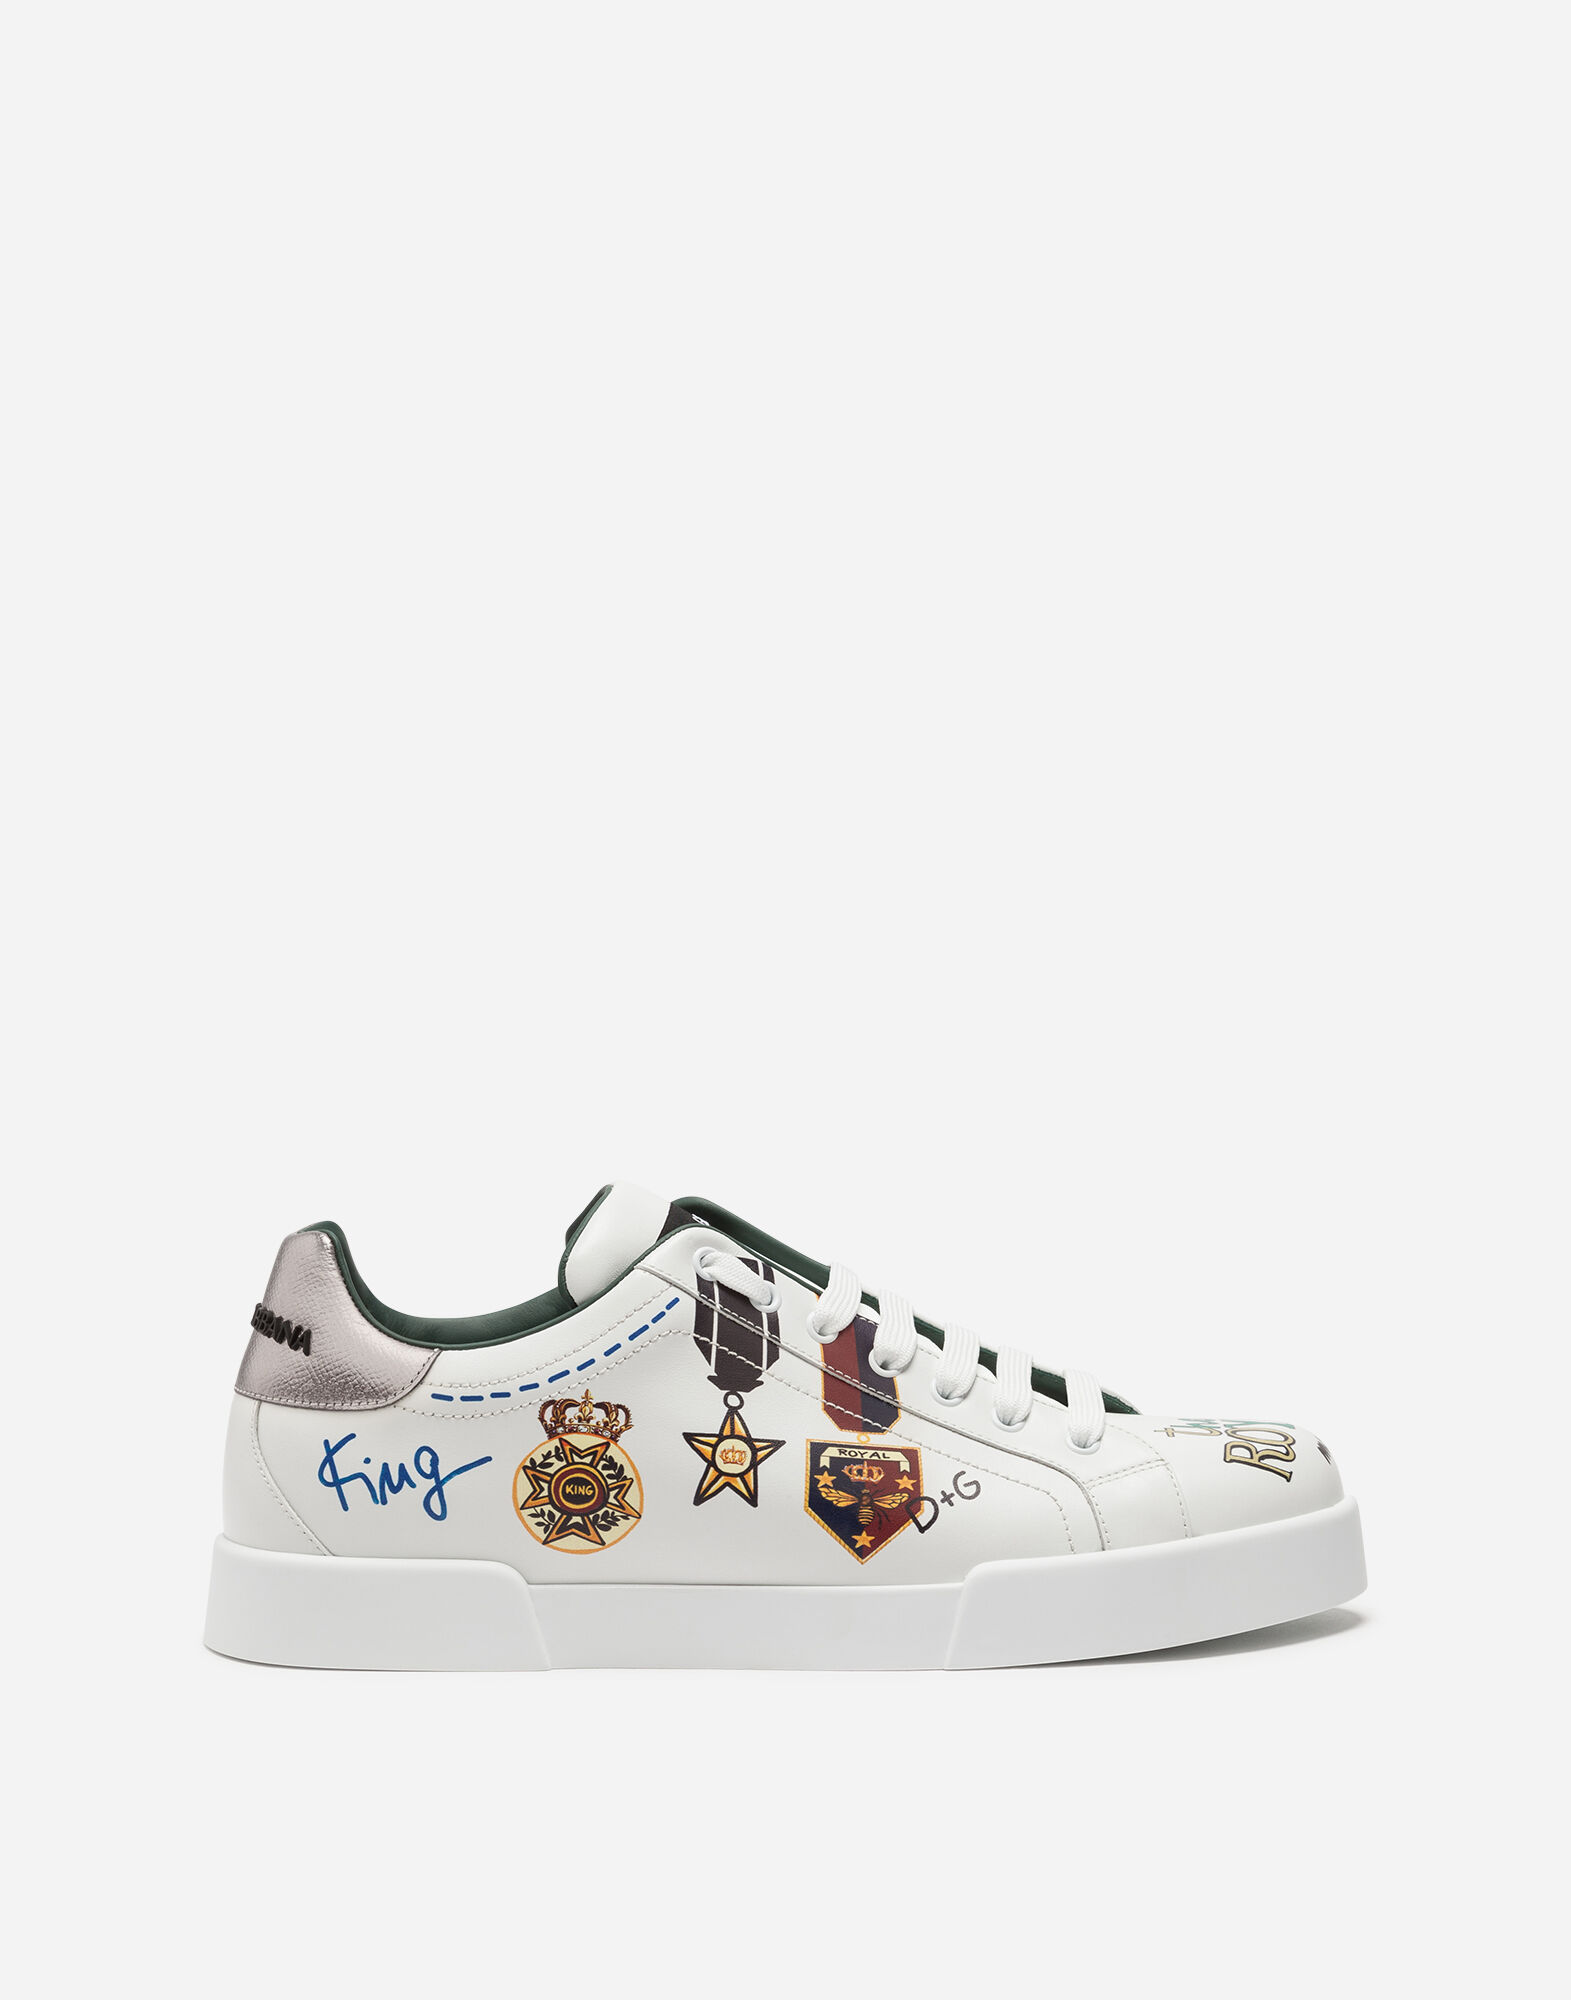 Chaussures Chaussures Homme Dolce amp;gabbana Dolce Homme amp;gabbana 7PSrwzqHx7